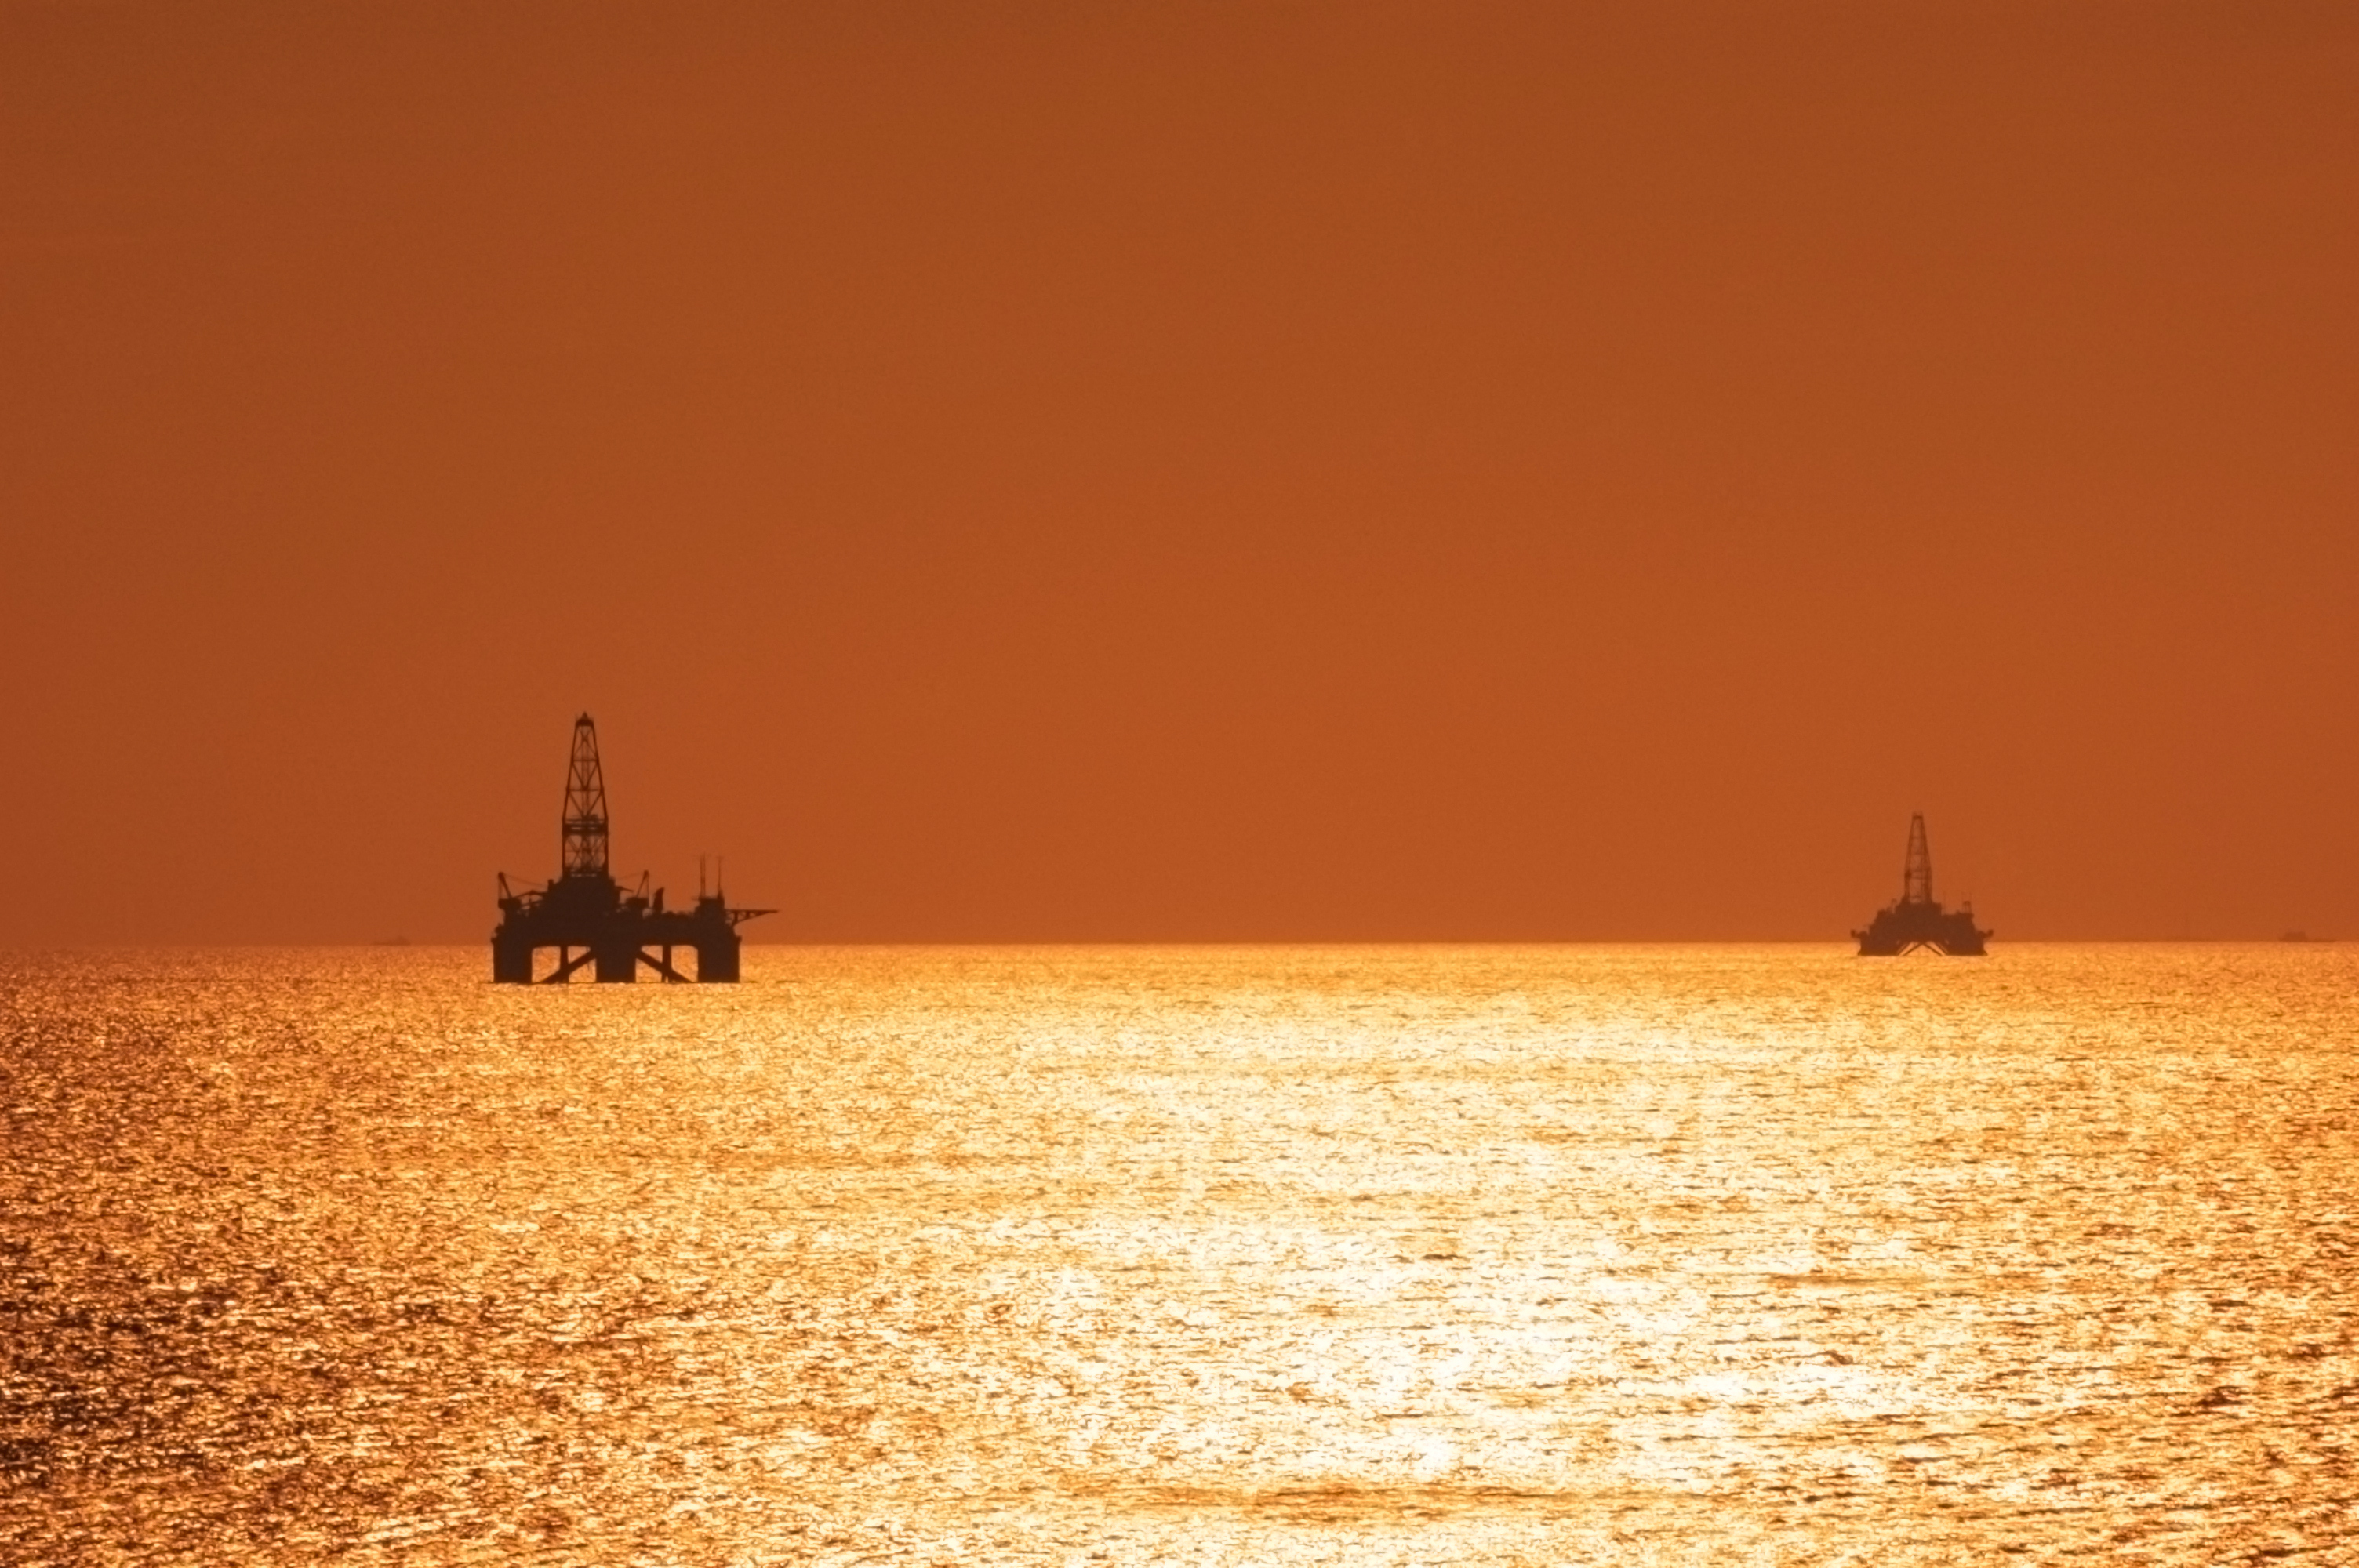 Two offshore oil rigs during sunset in Caspian sea.